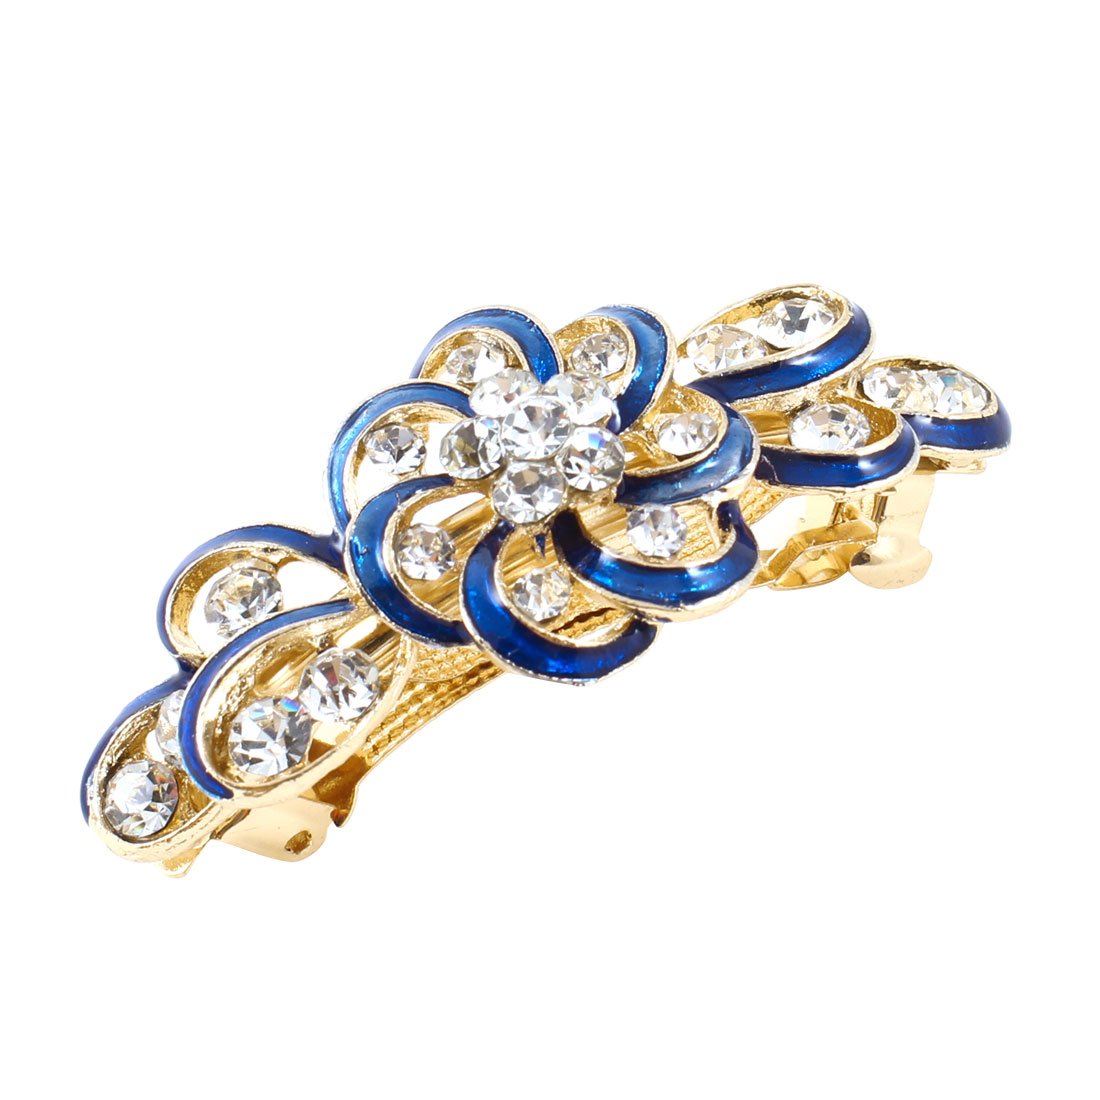 Woman Gold Tone Metal Blue Plastic Rhinestone Hairpin French Hair Clip Barrette